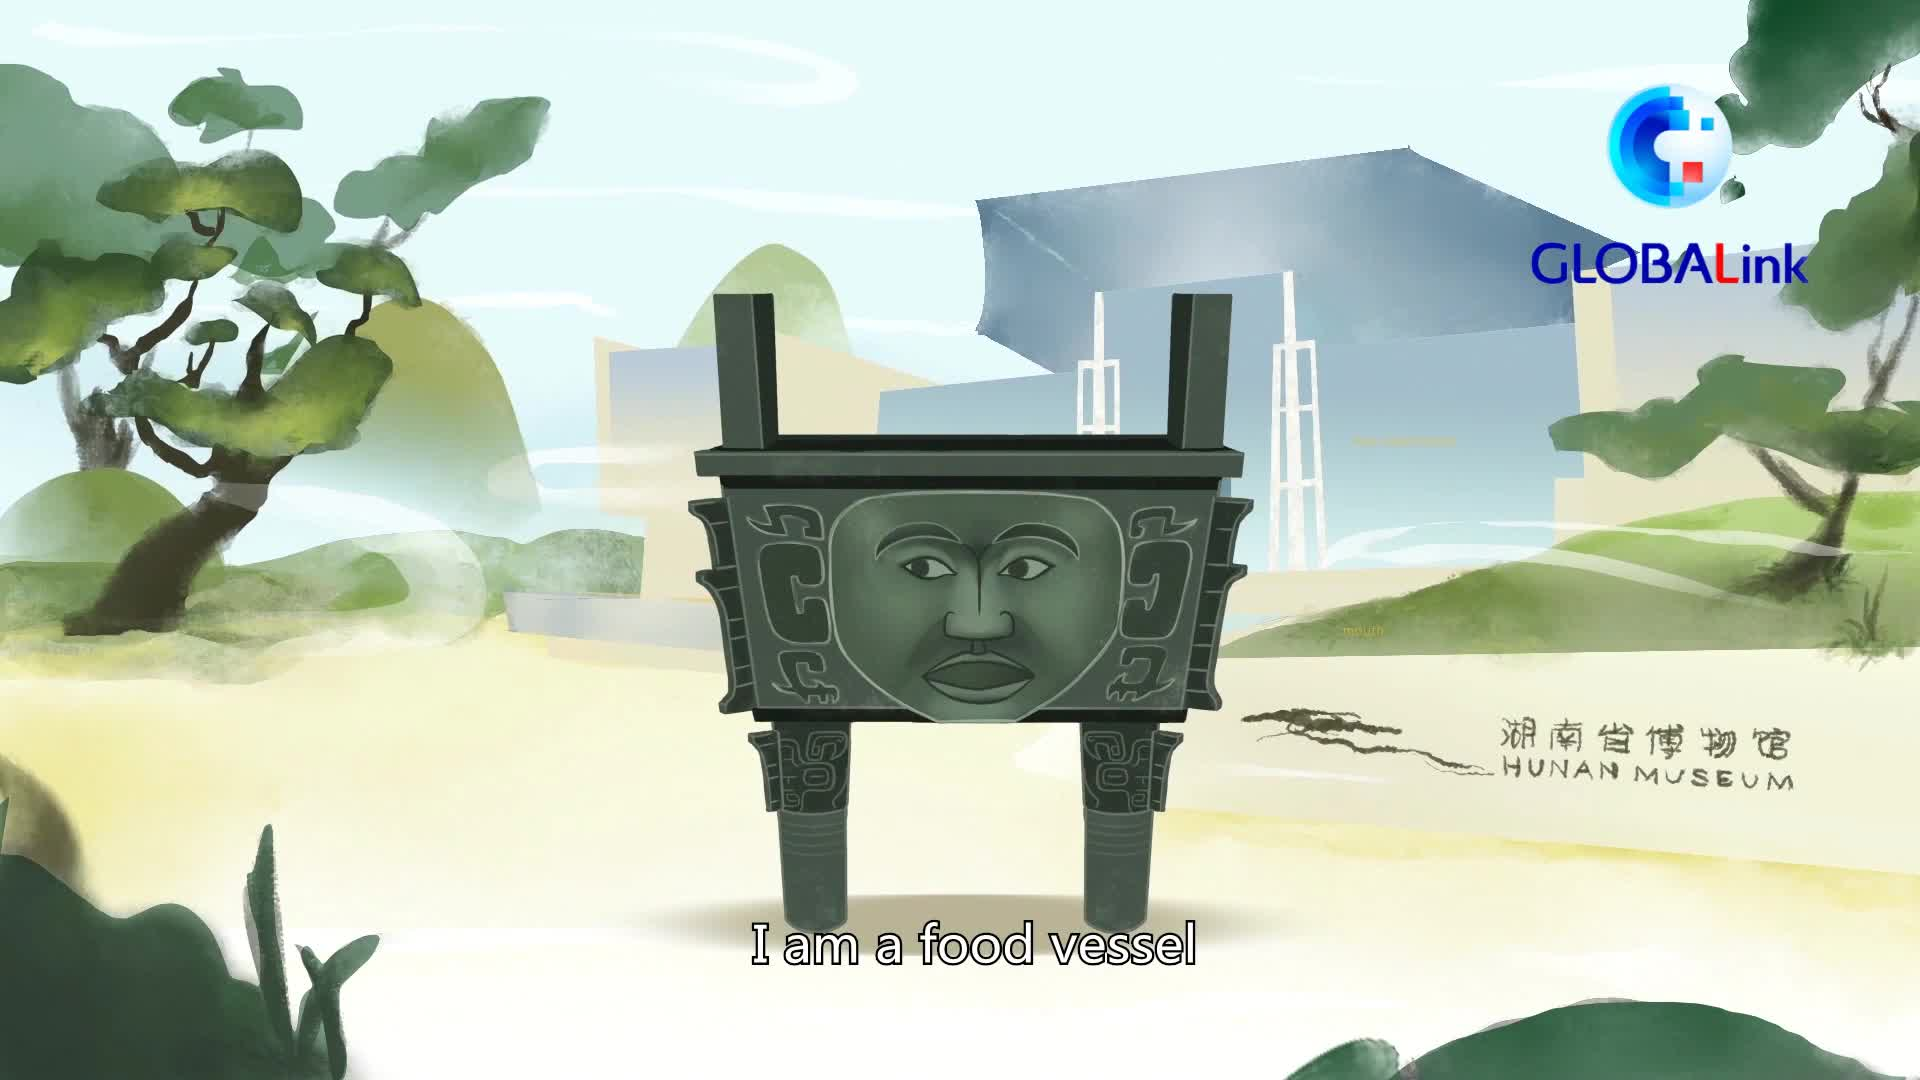 GLOBALink | Time travel with cultural treasures Epi 6. Ritual vessel with human face pattern